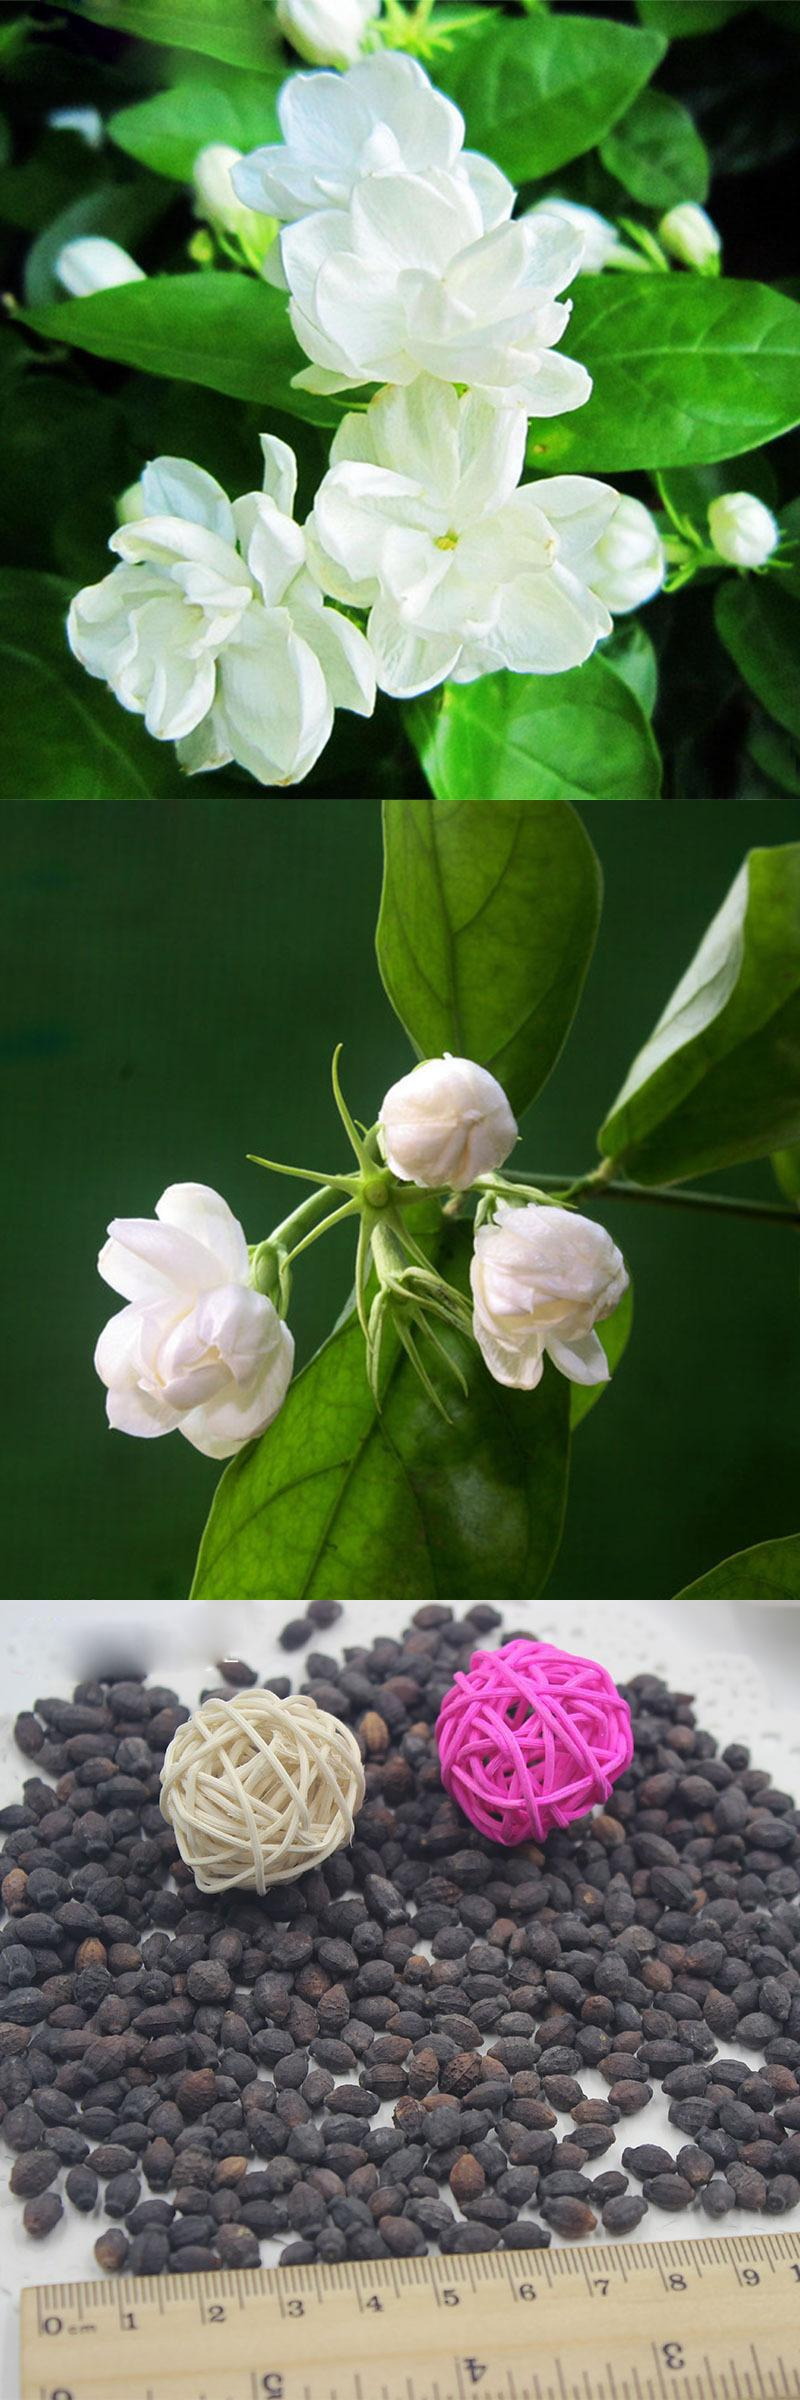 Visit to buy 20 pcsbag white jasmine seeds jasmine flower seeds visit to buy 20 pcsbag white jasmine seeds jasmine flower seeds fragrant izmirmasajfo